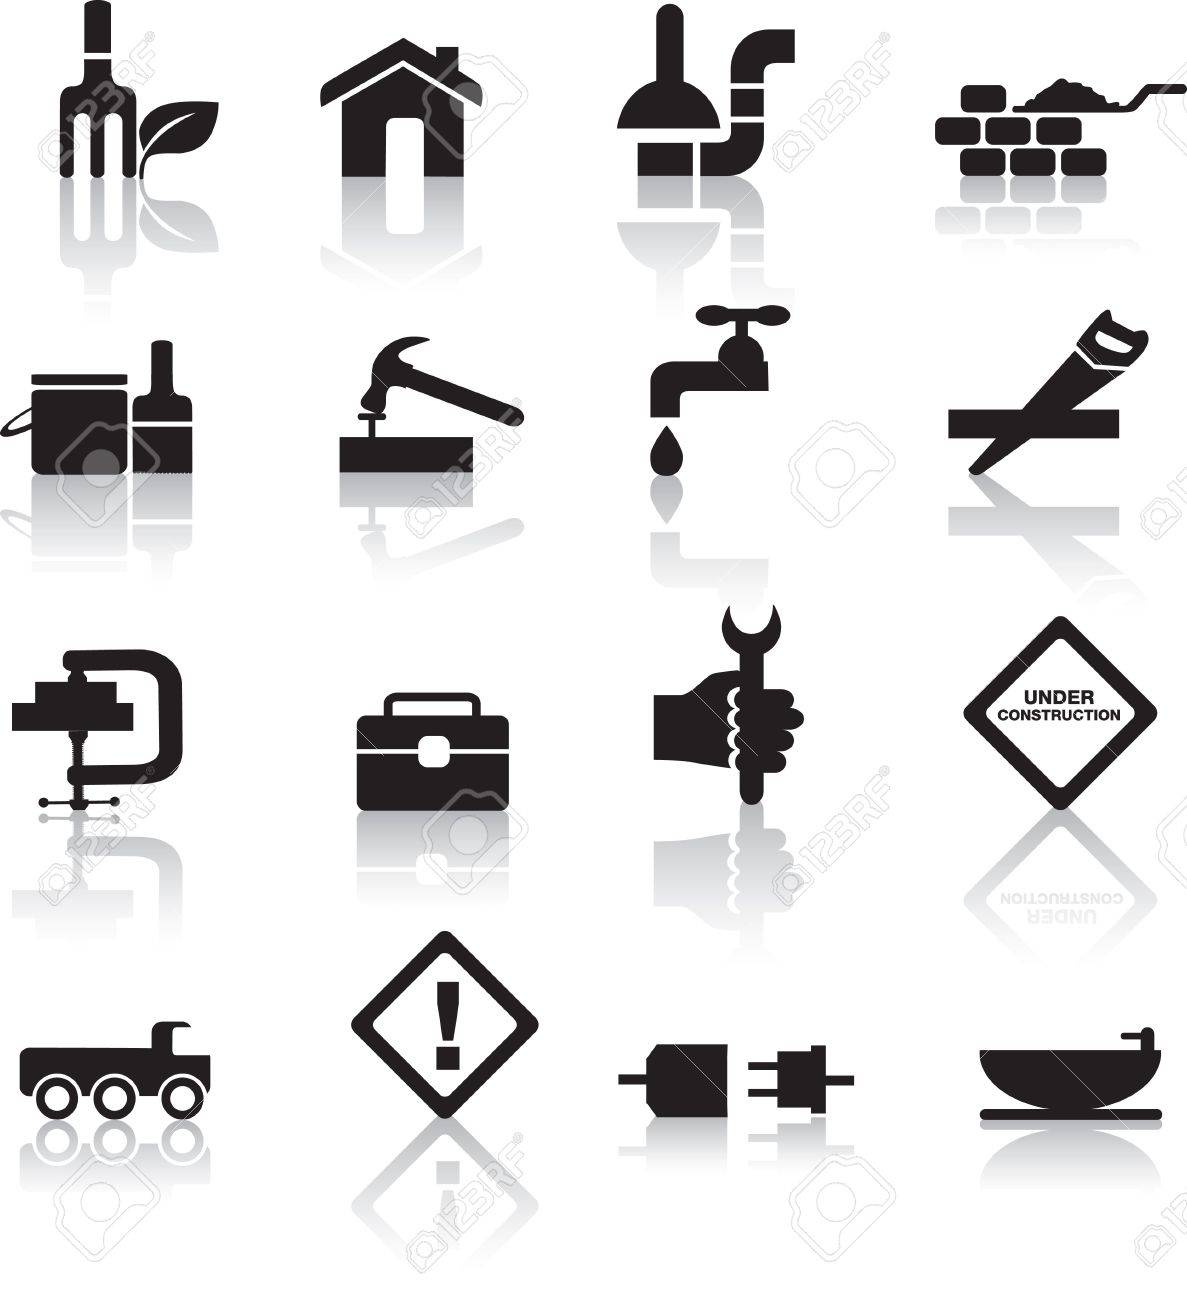 Construction and diy black silhouette icon button set royalty free construction and diy black silhouette icon button set stock vector 7007587 solutioingenieria Images